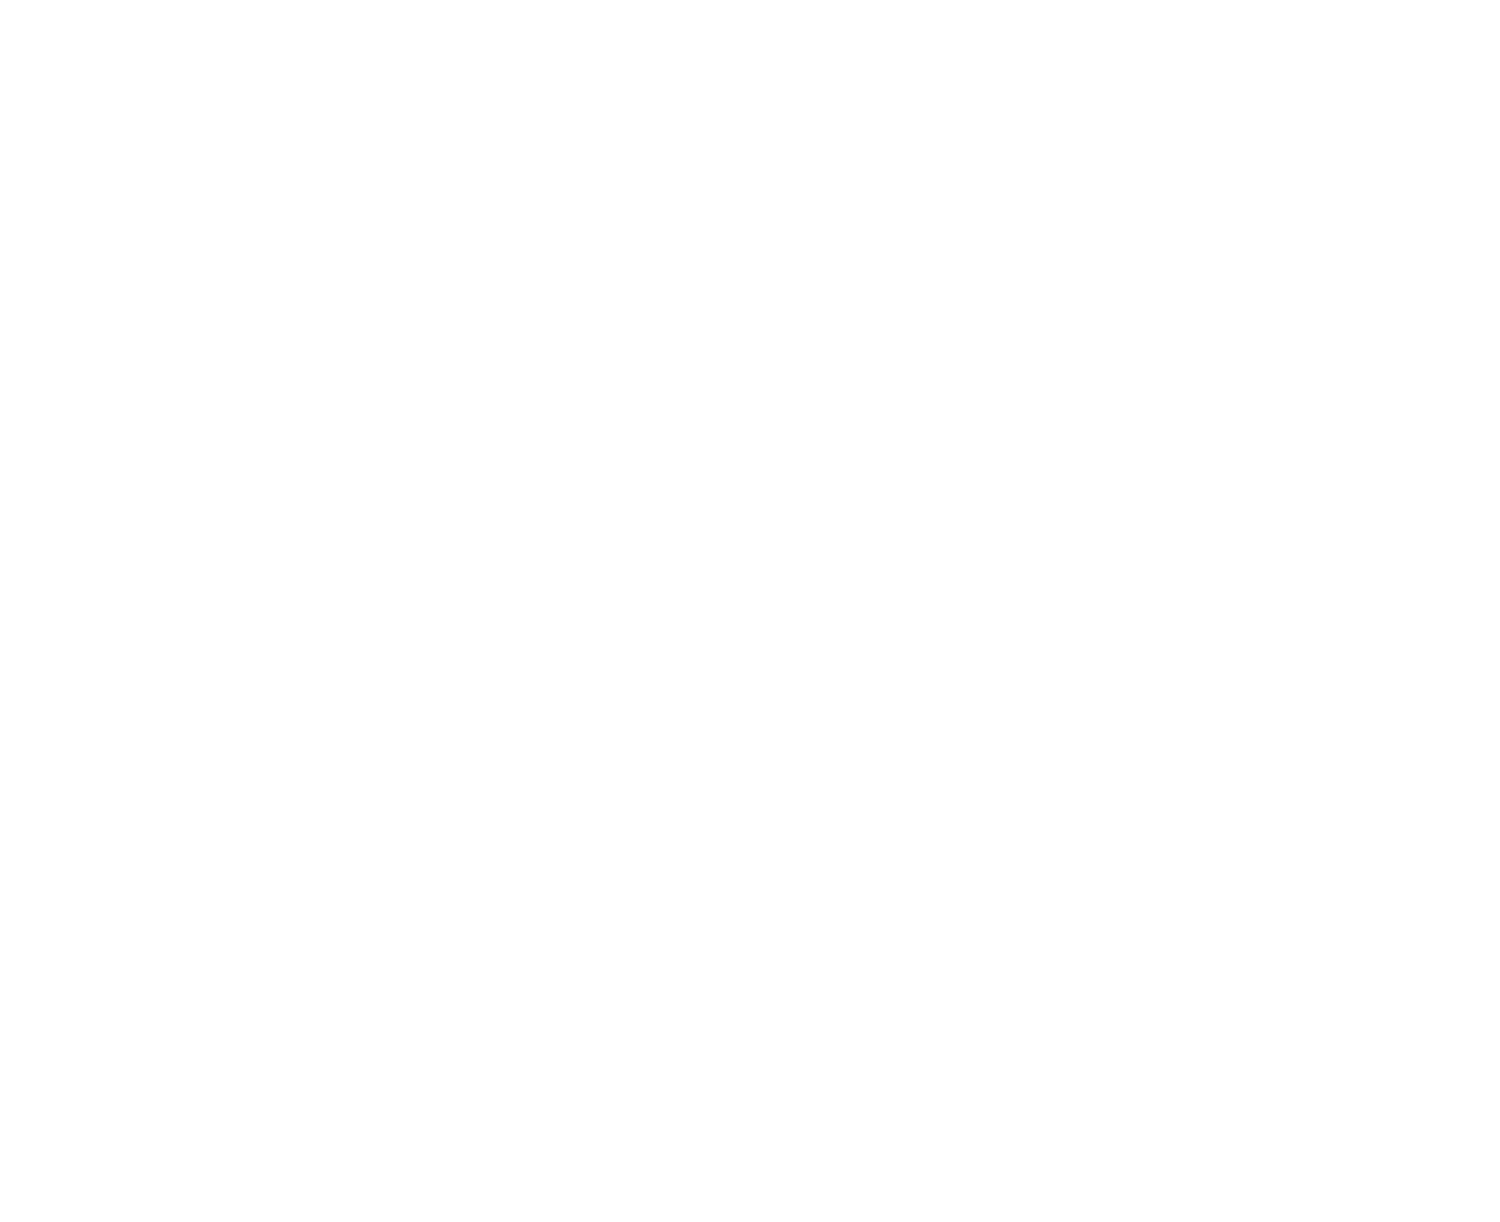 Curts & Reed Optometry